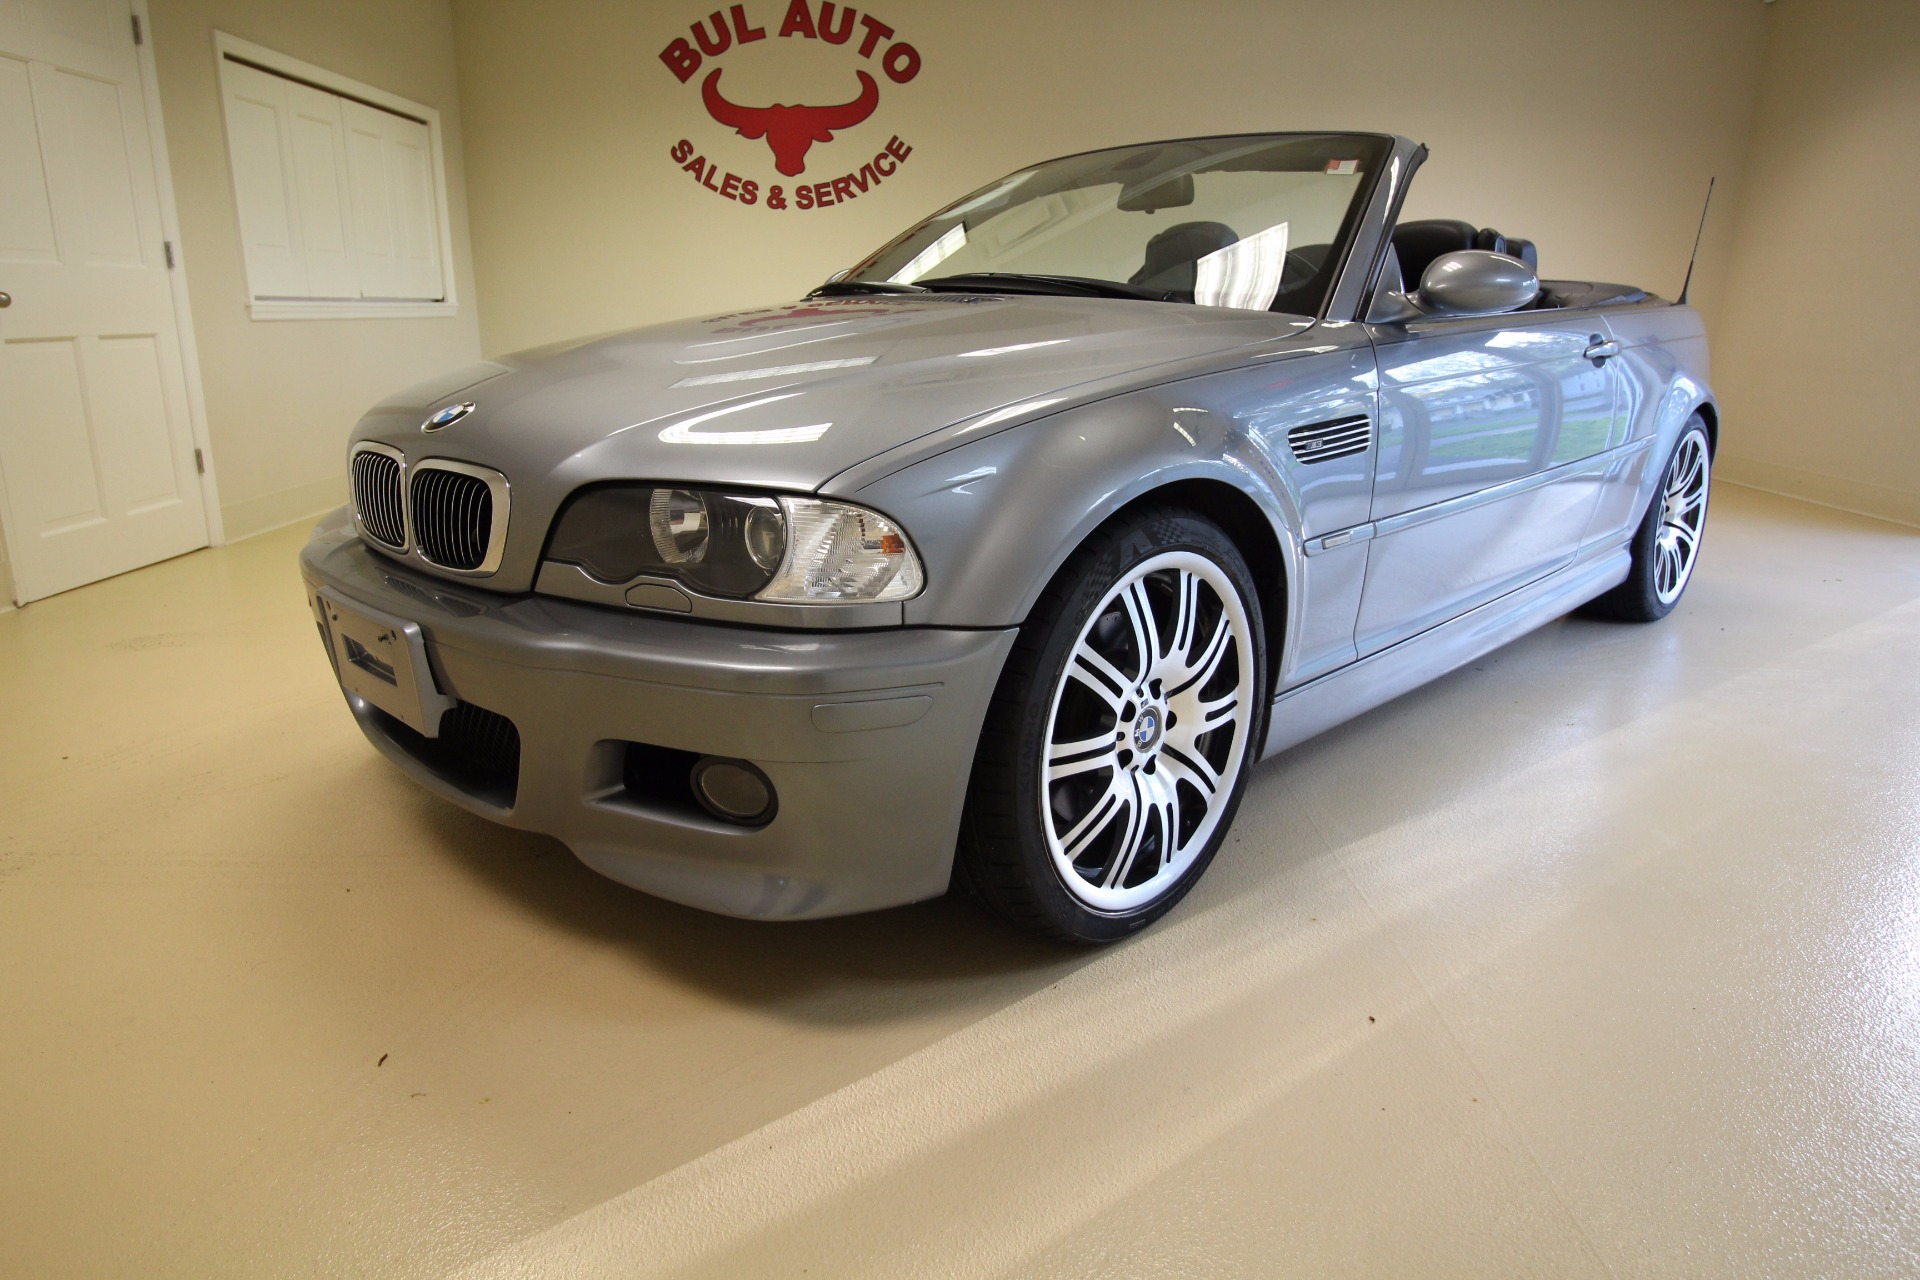 2004 bmw m3 convertible stock 17083 for sale near albany ny ny bmw dealer for sale in. Black Bedroom Furniture Sets. Home Design Ideas